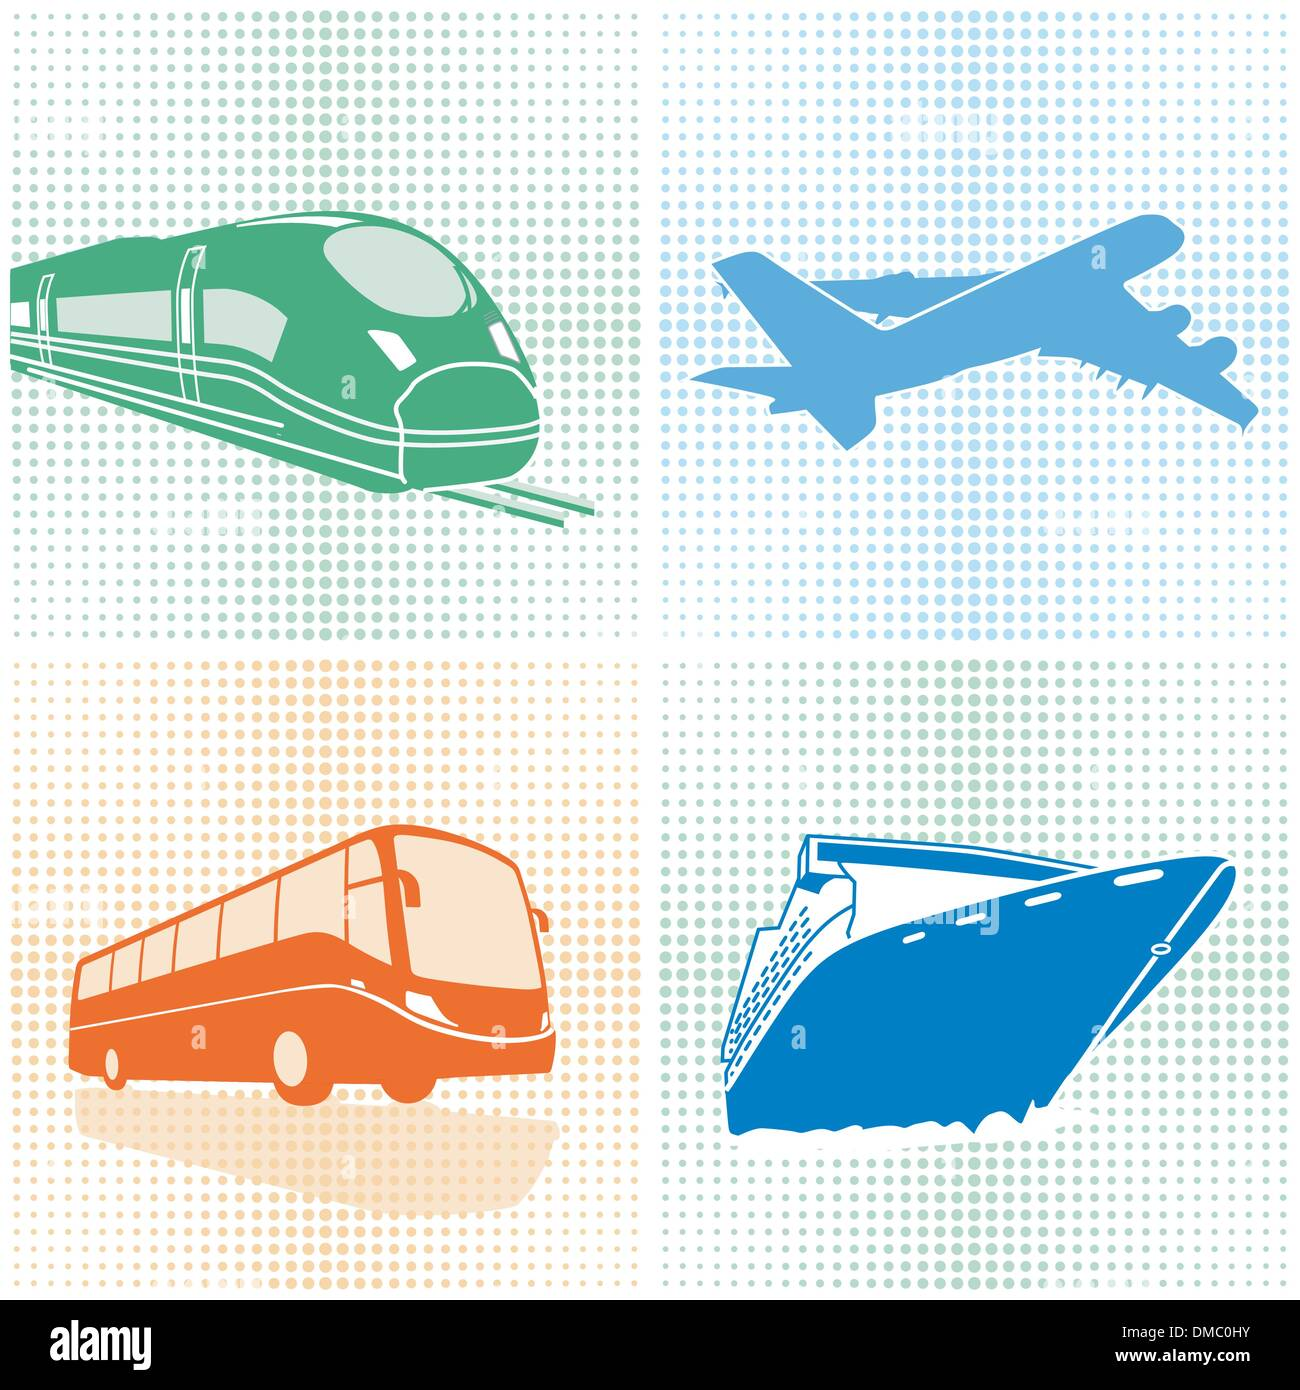 Airplane, bus, train, ship, transport Stock Vector